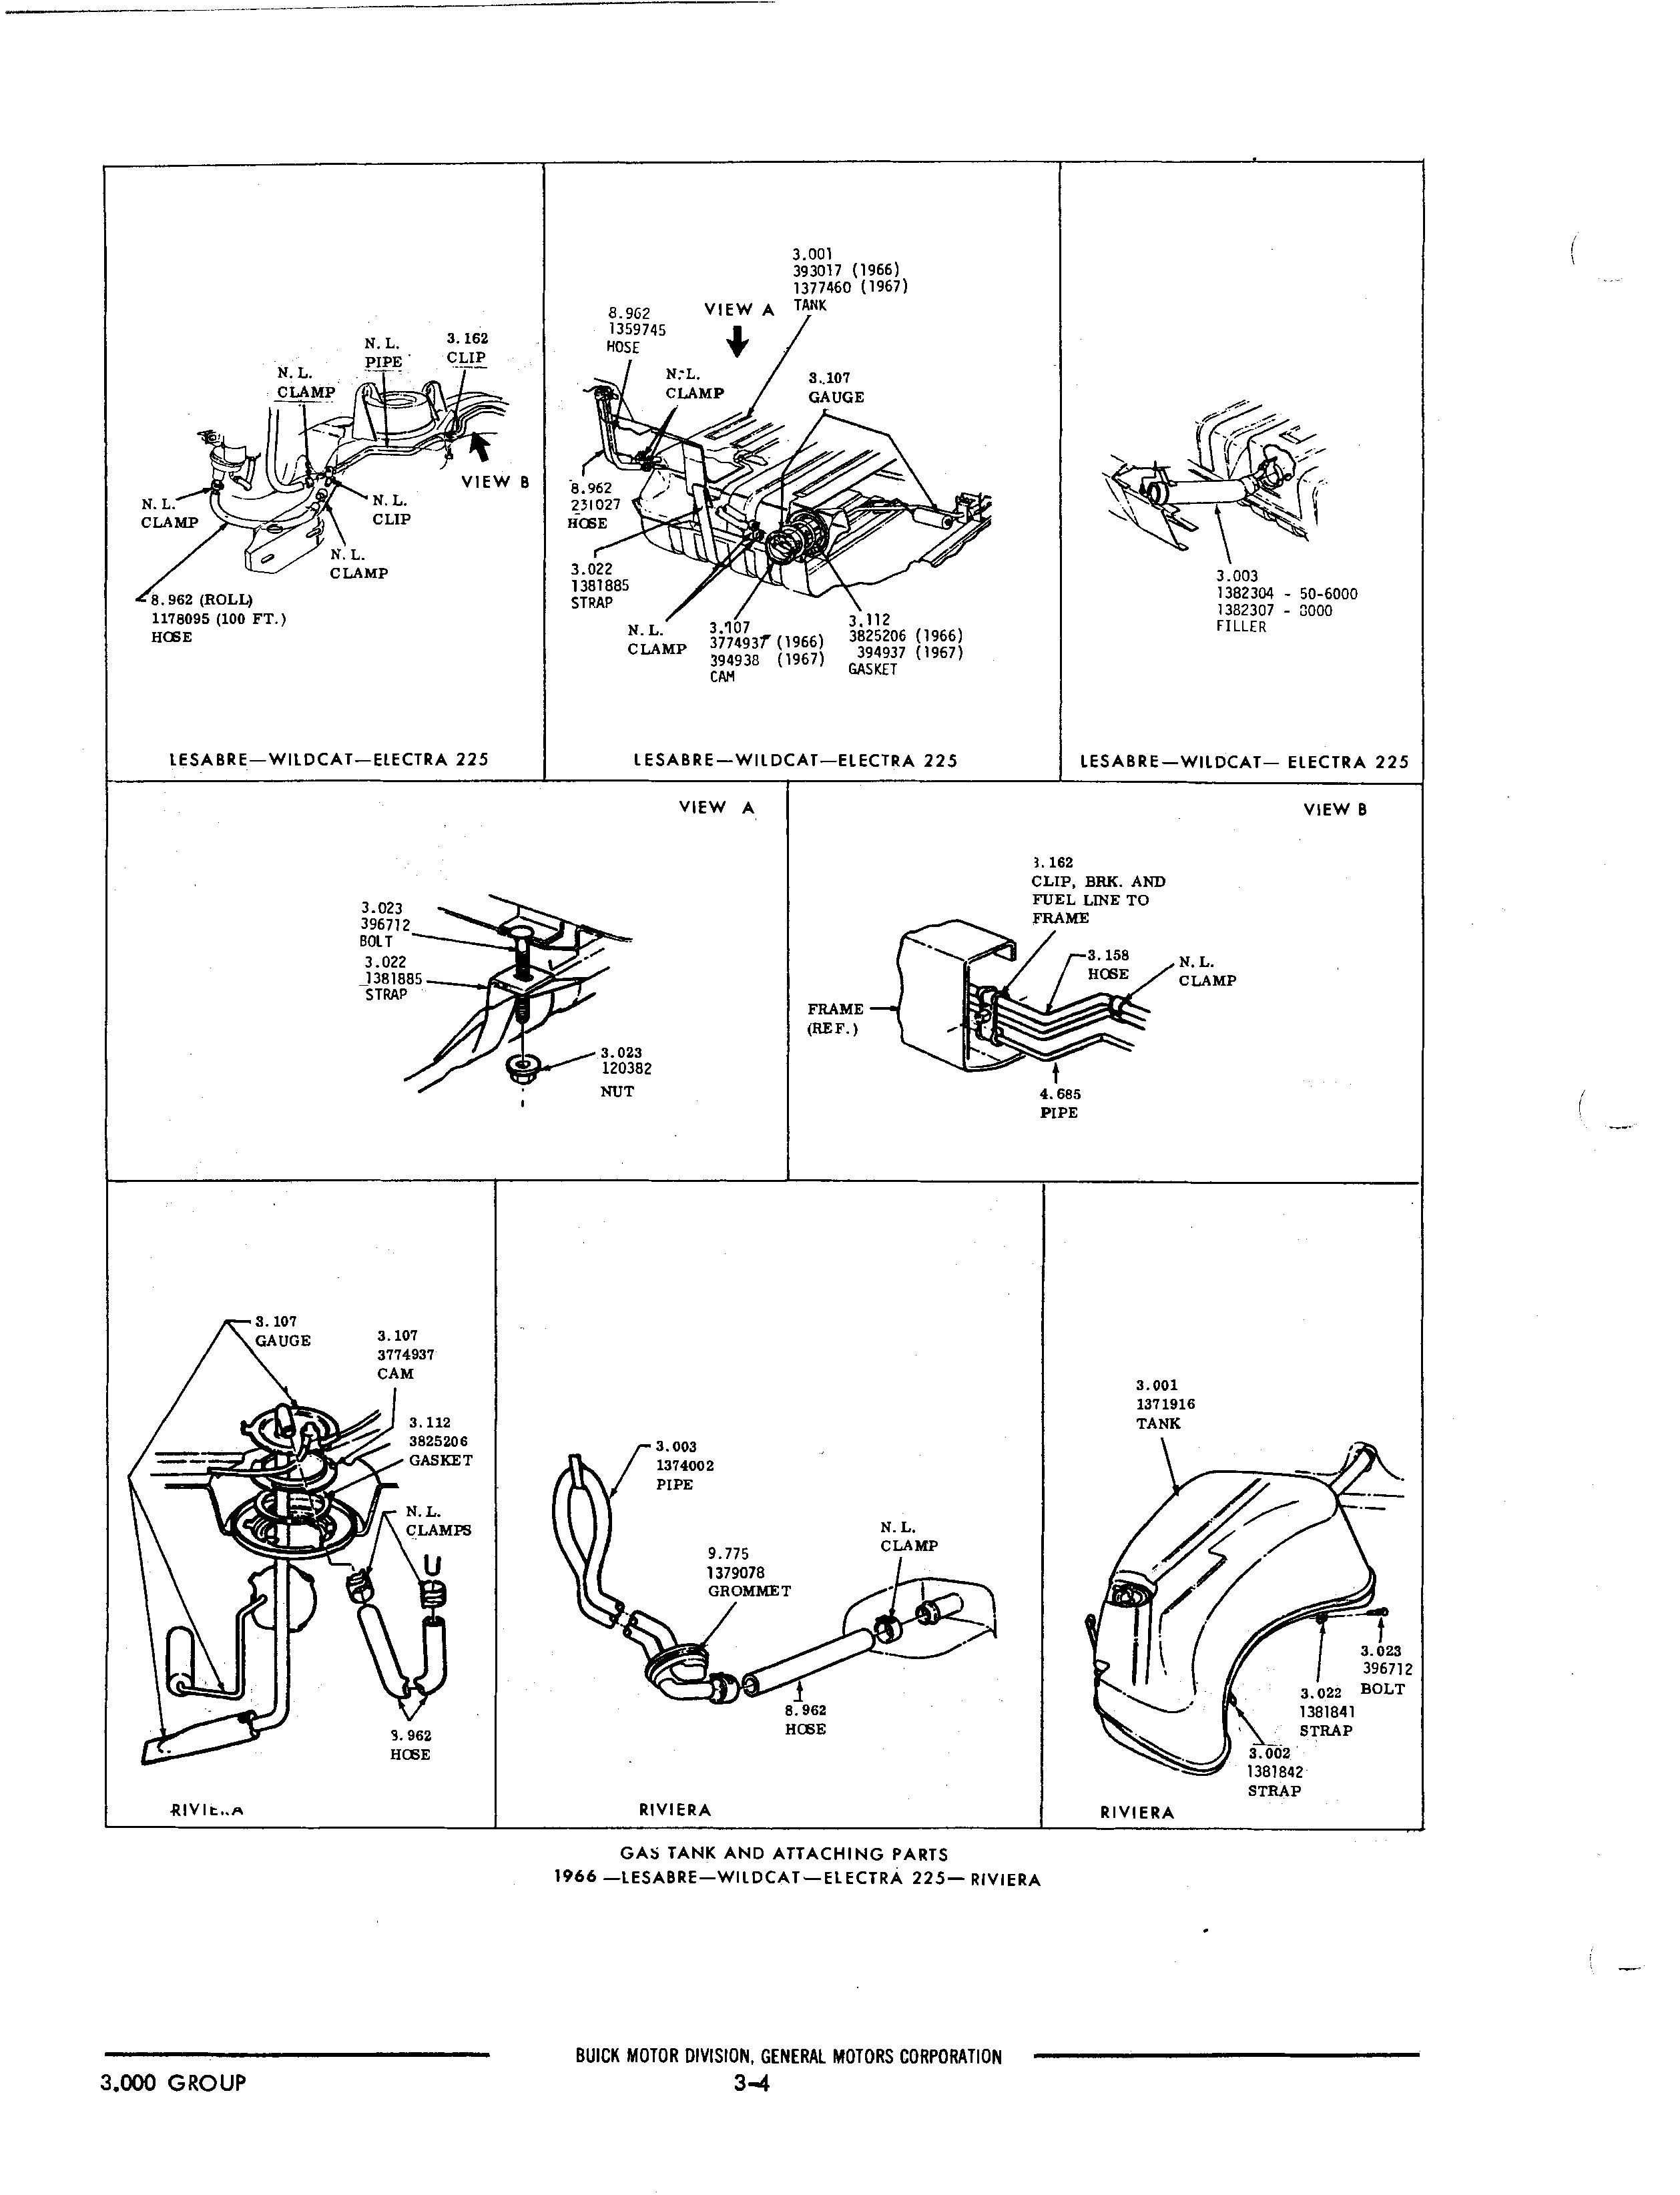 1948 Buick Wiring Harness. Buick. Auto Wiring Diagram